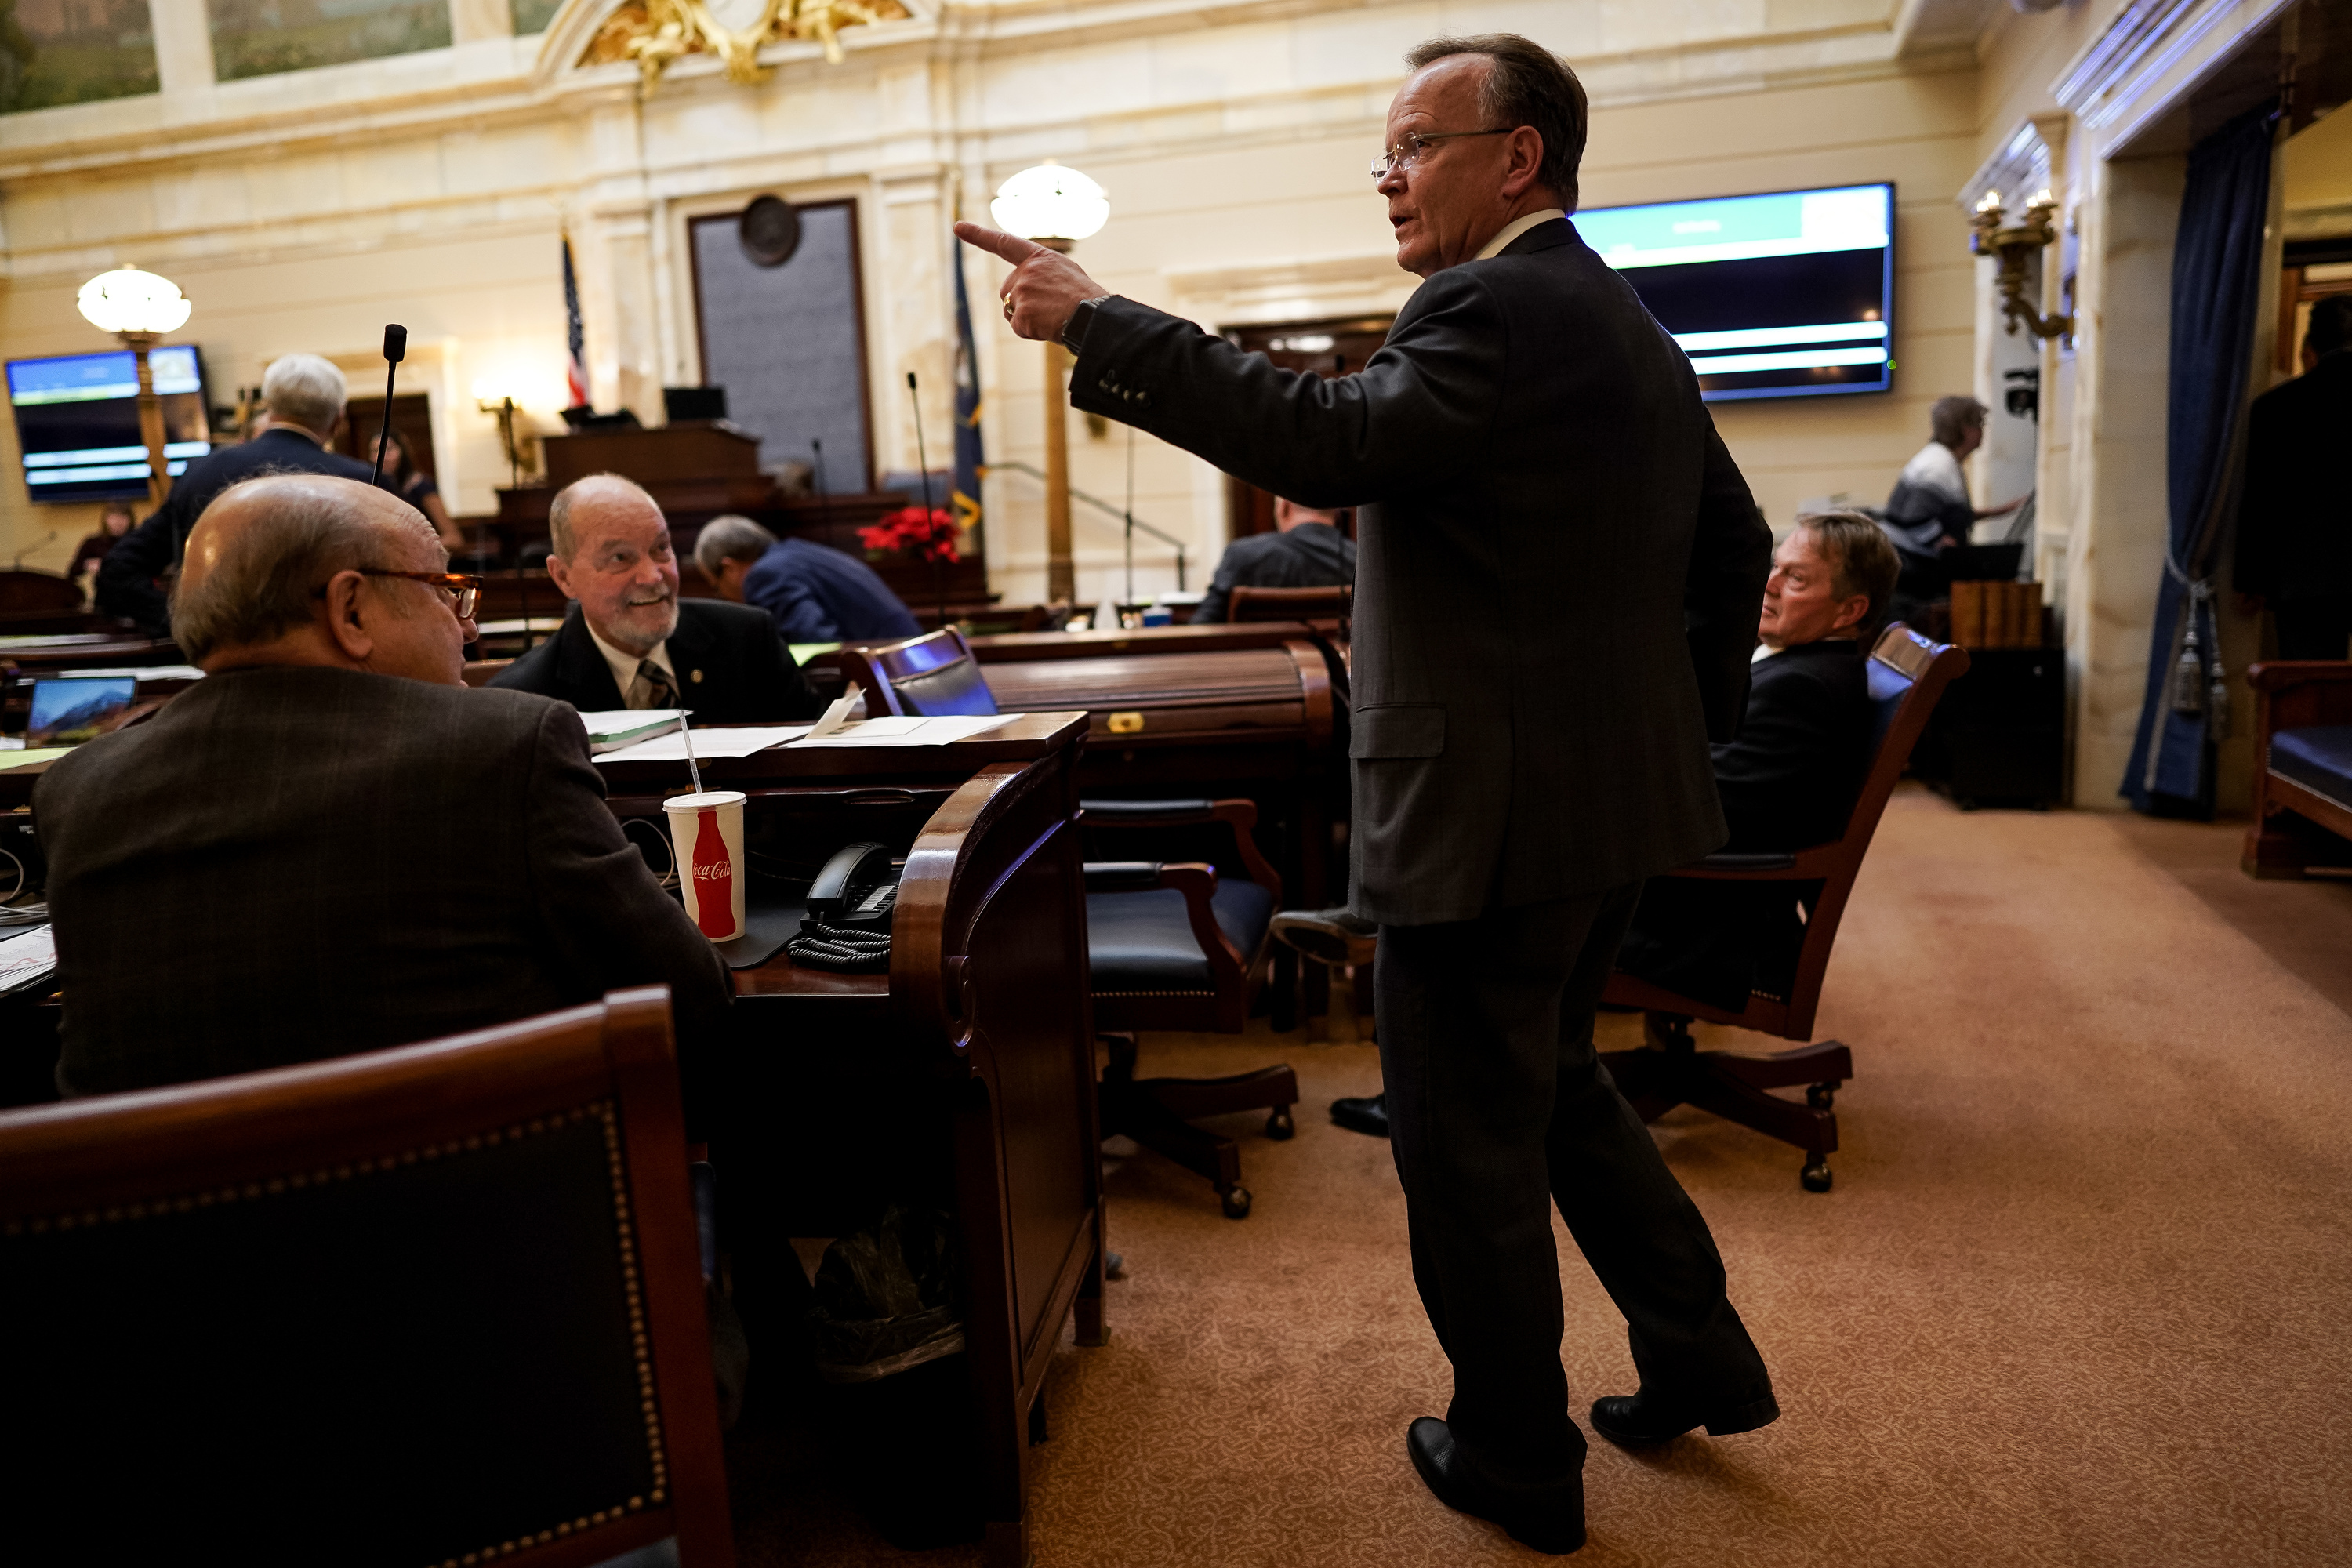 Senate President Stuart Adams, R-Layton, talks to others on the Senate floor after passing a tax reform bill during a special legislative session at the Capitol in Salt Lake City on Thursday, Dec. 12, 2019.